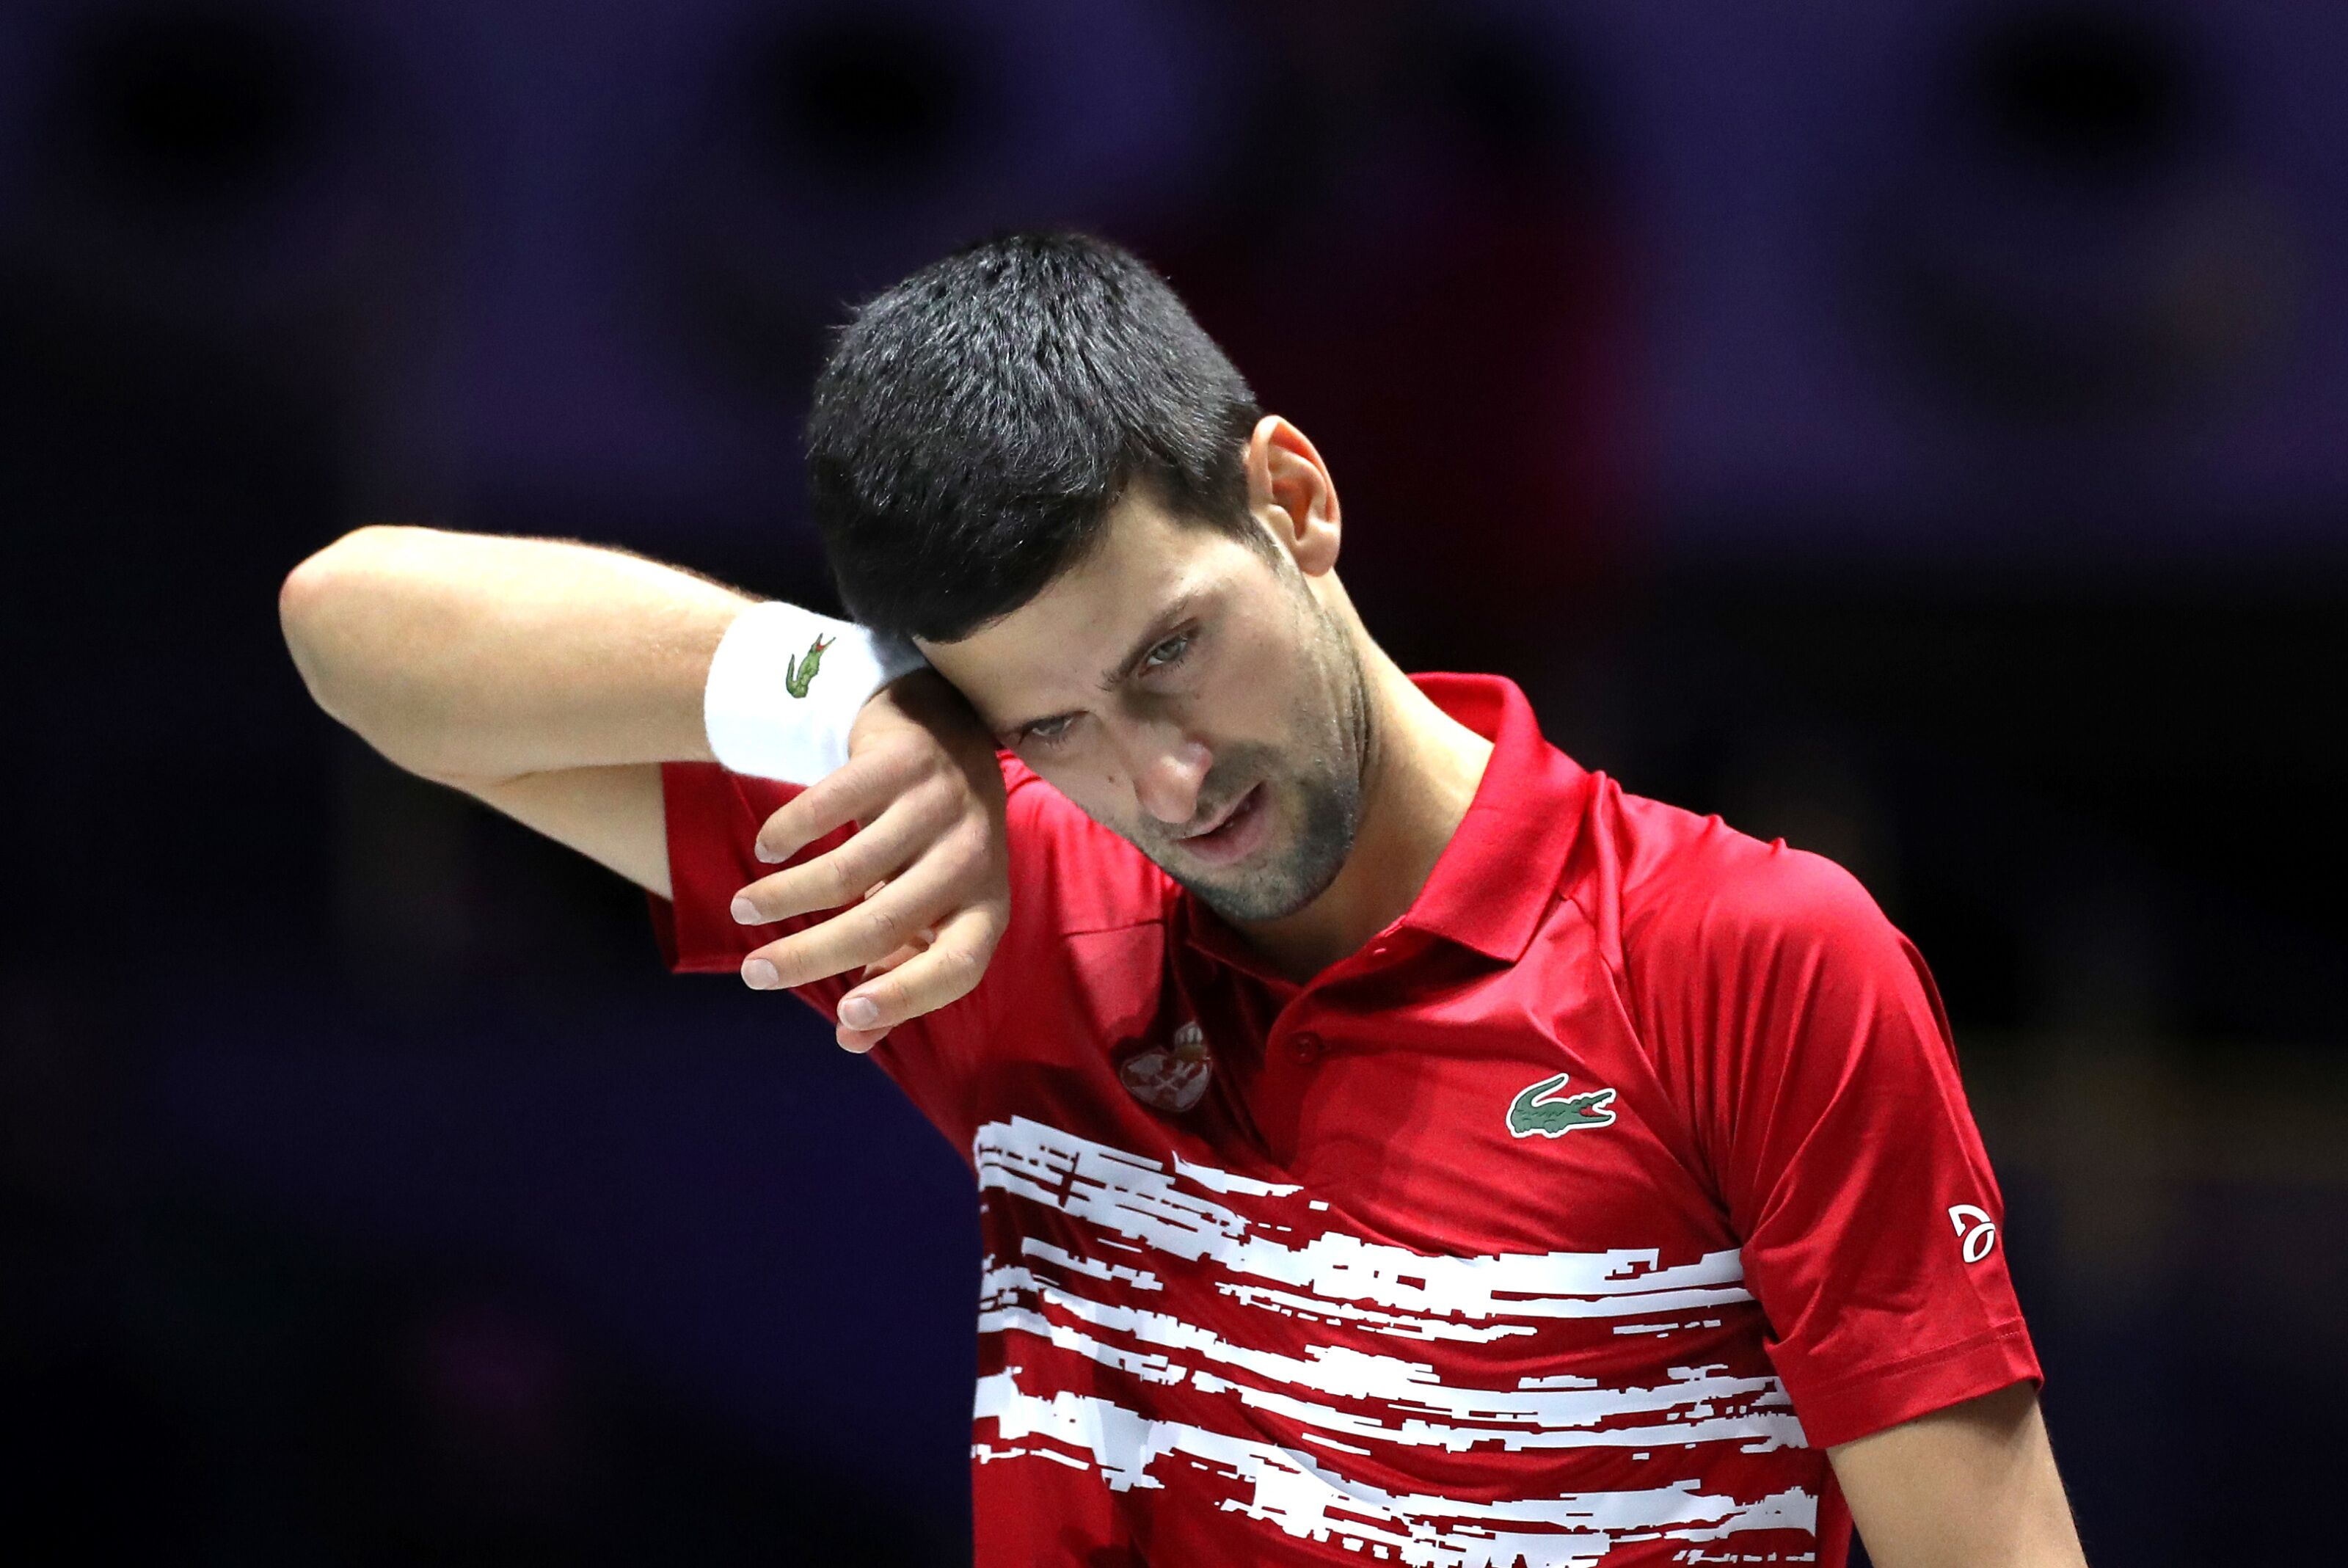 Novak Djokovic makes unusual schedule change ahead of Australian Open